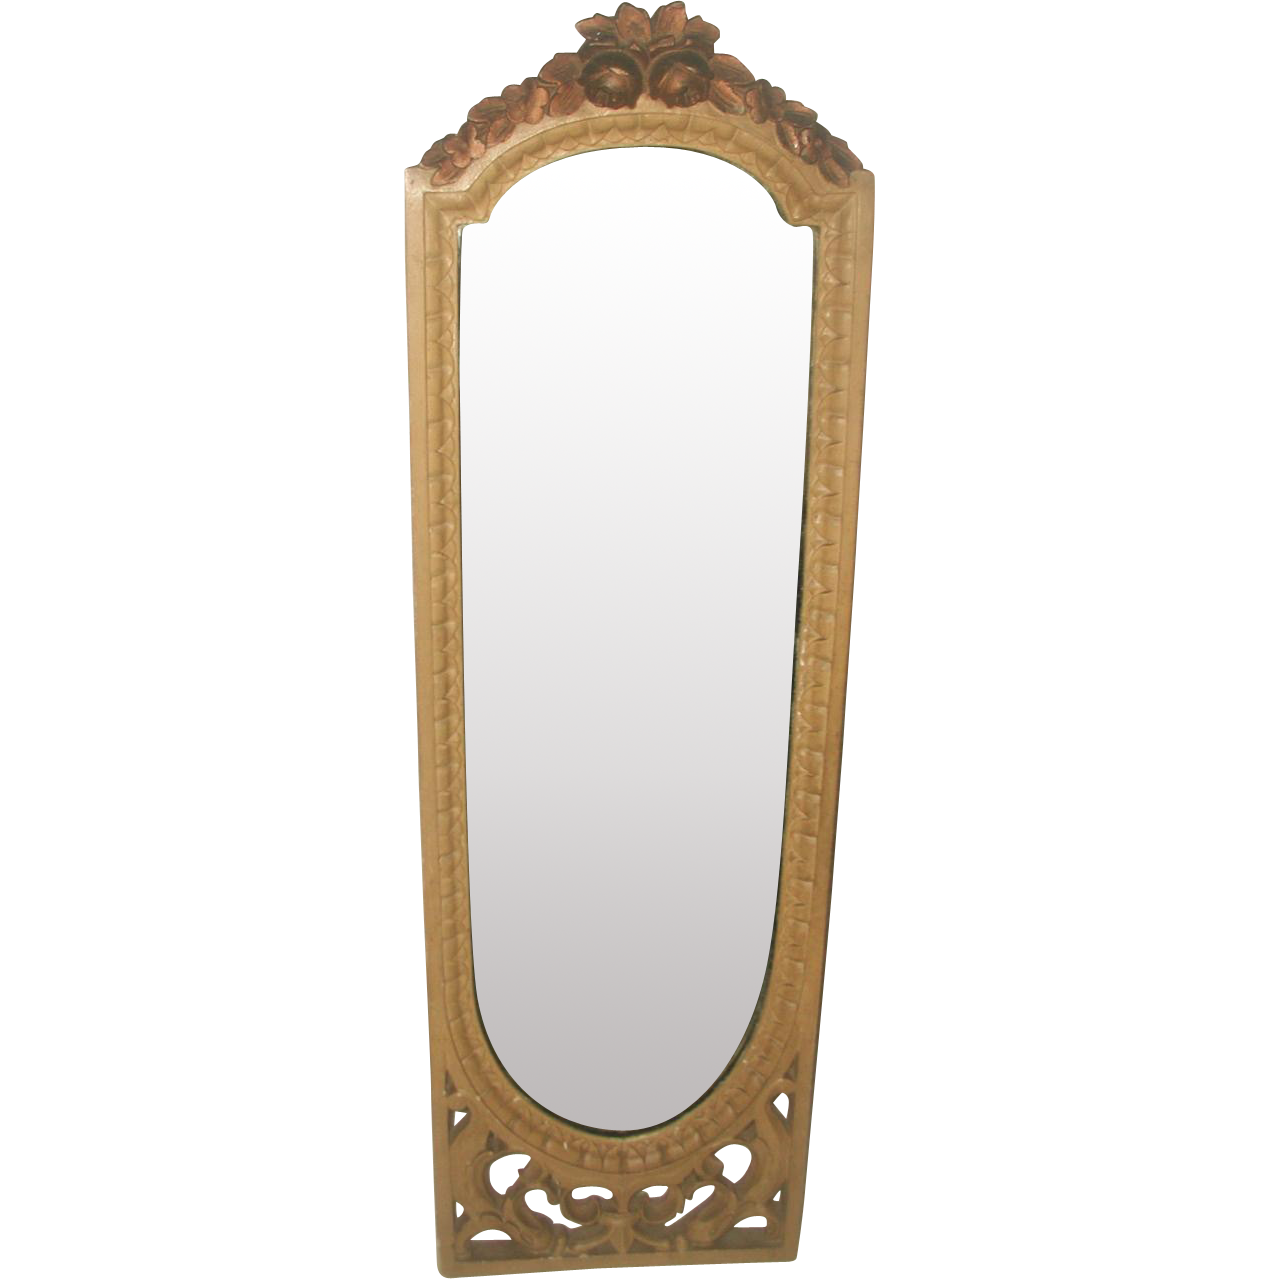 Petite Arched Mirror Wooden Carved 19th Century